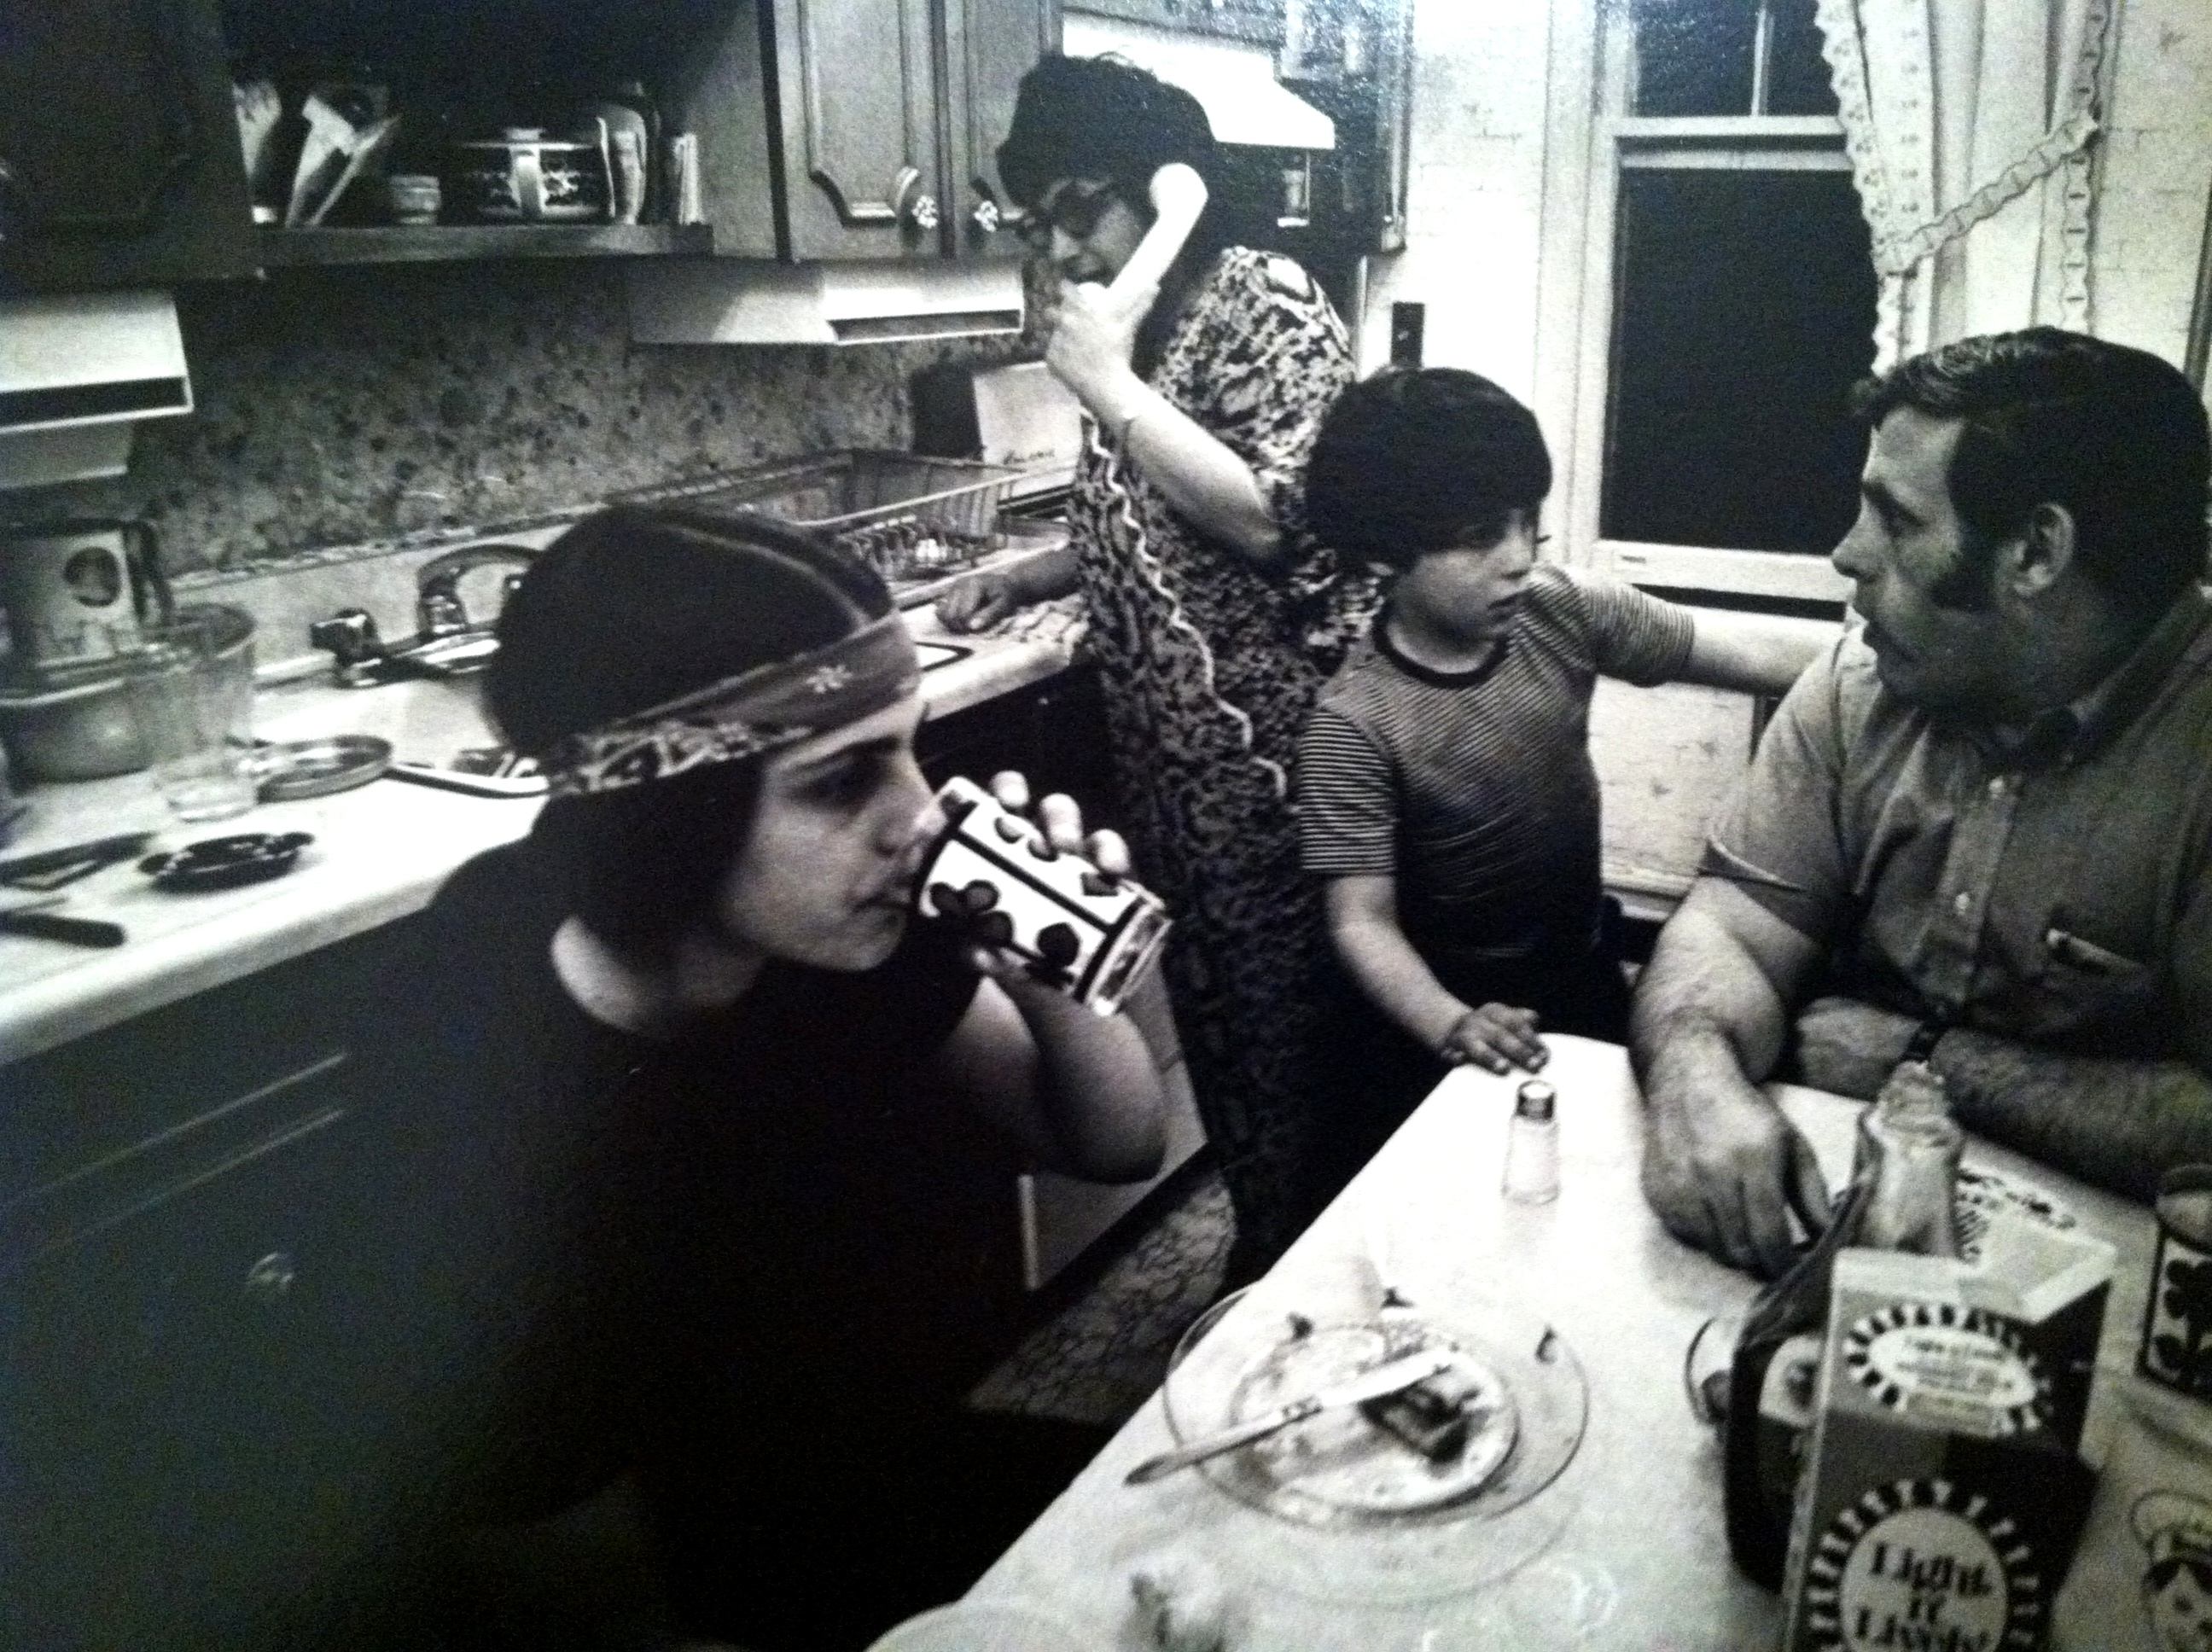 Mom, Dad, my brother and me eating in the kitchen